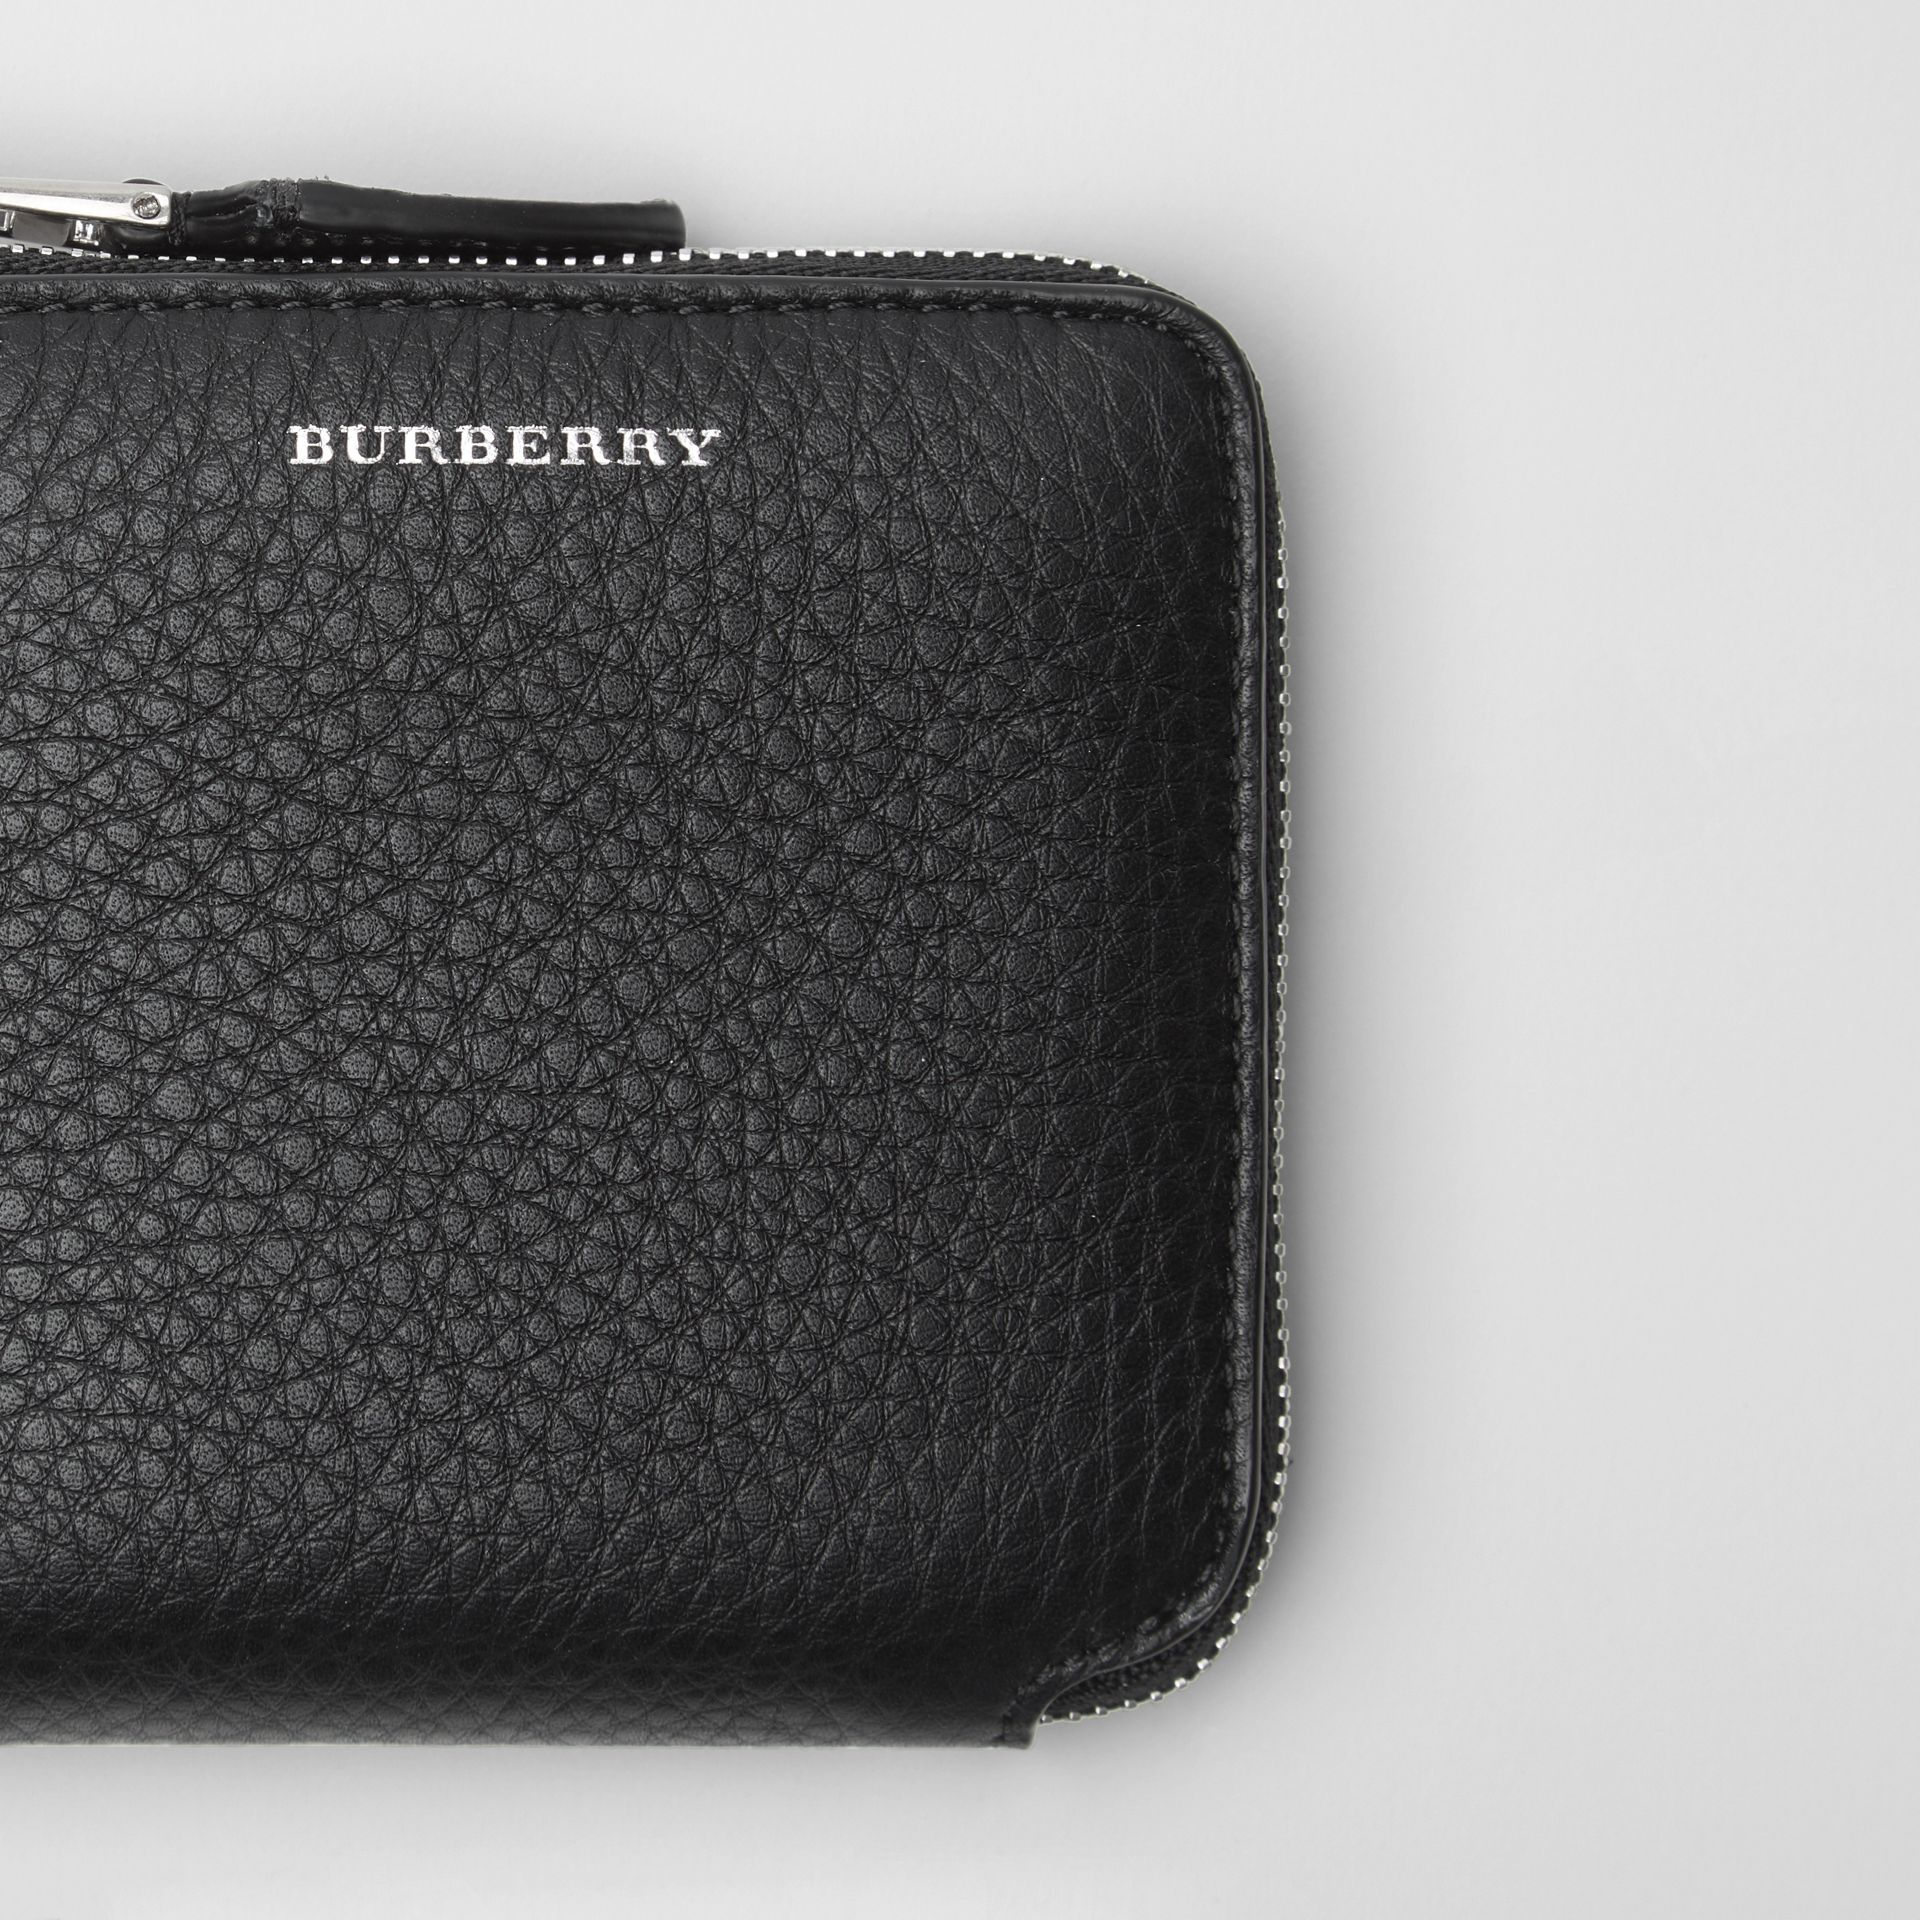 Grainy Leather Square Ziparound Wallet in Black - Women | Burberry United Kingdom - gallery image 1